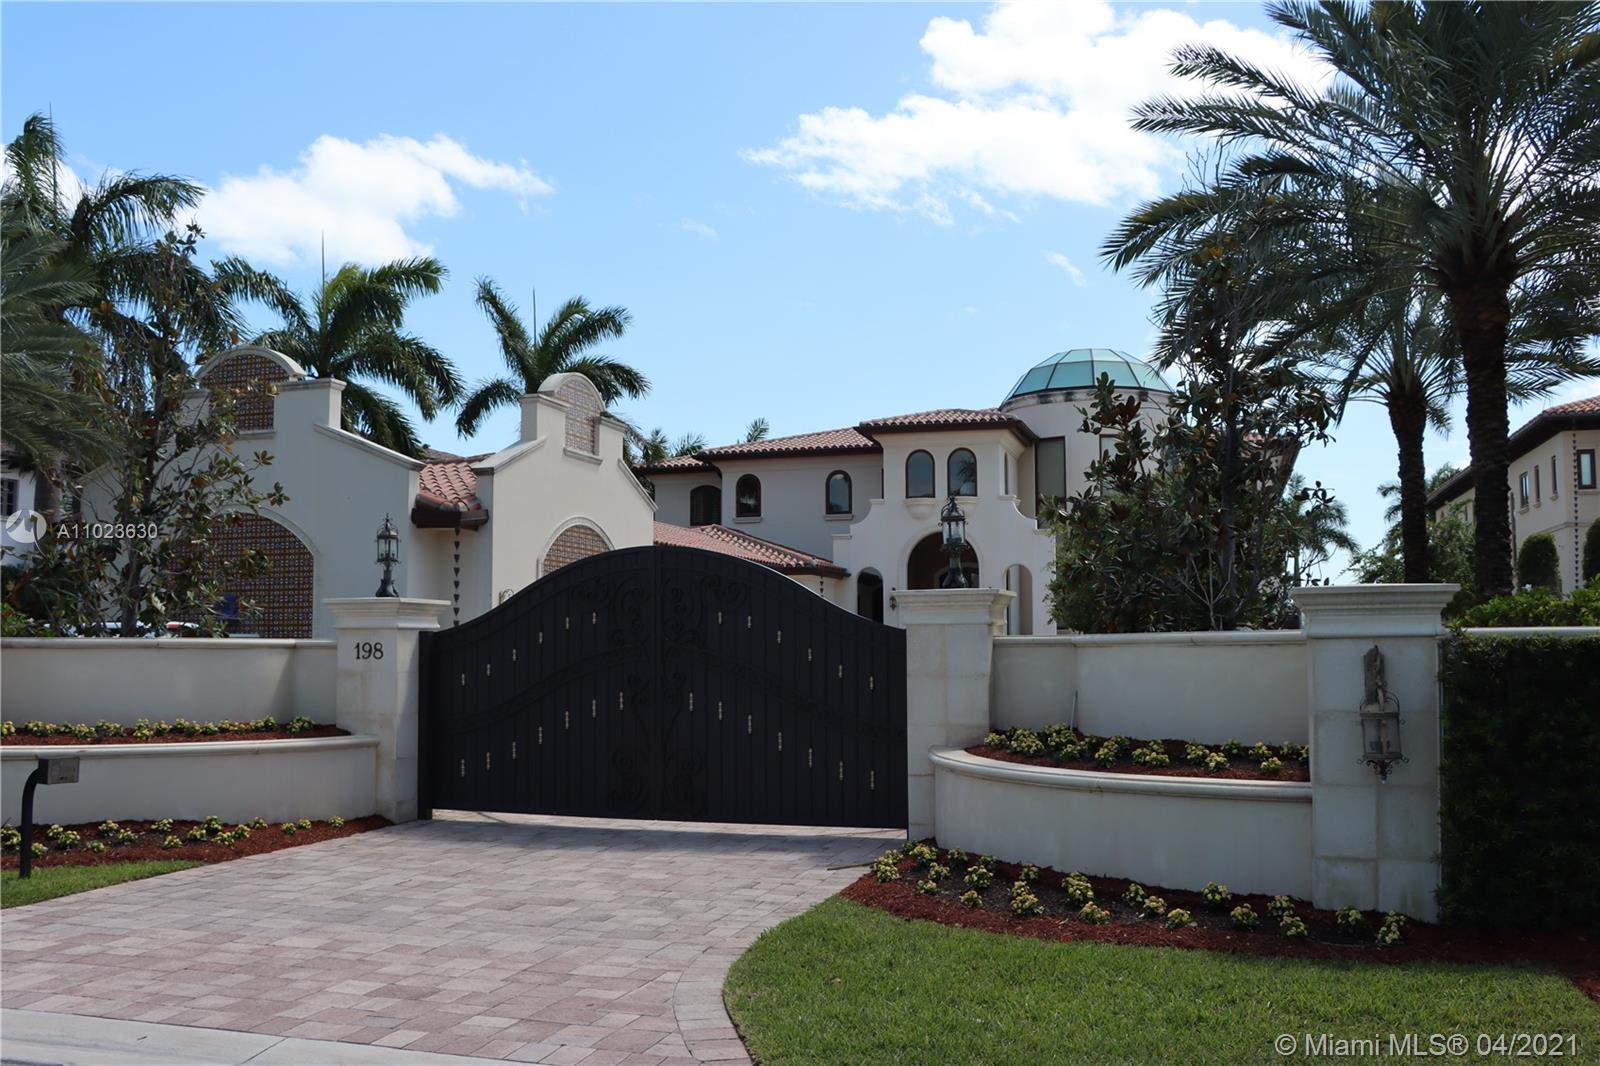 198 Palm Ave Luxury Real Estate